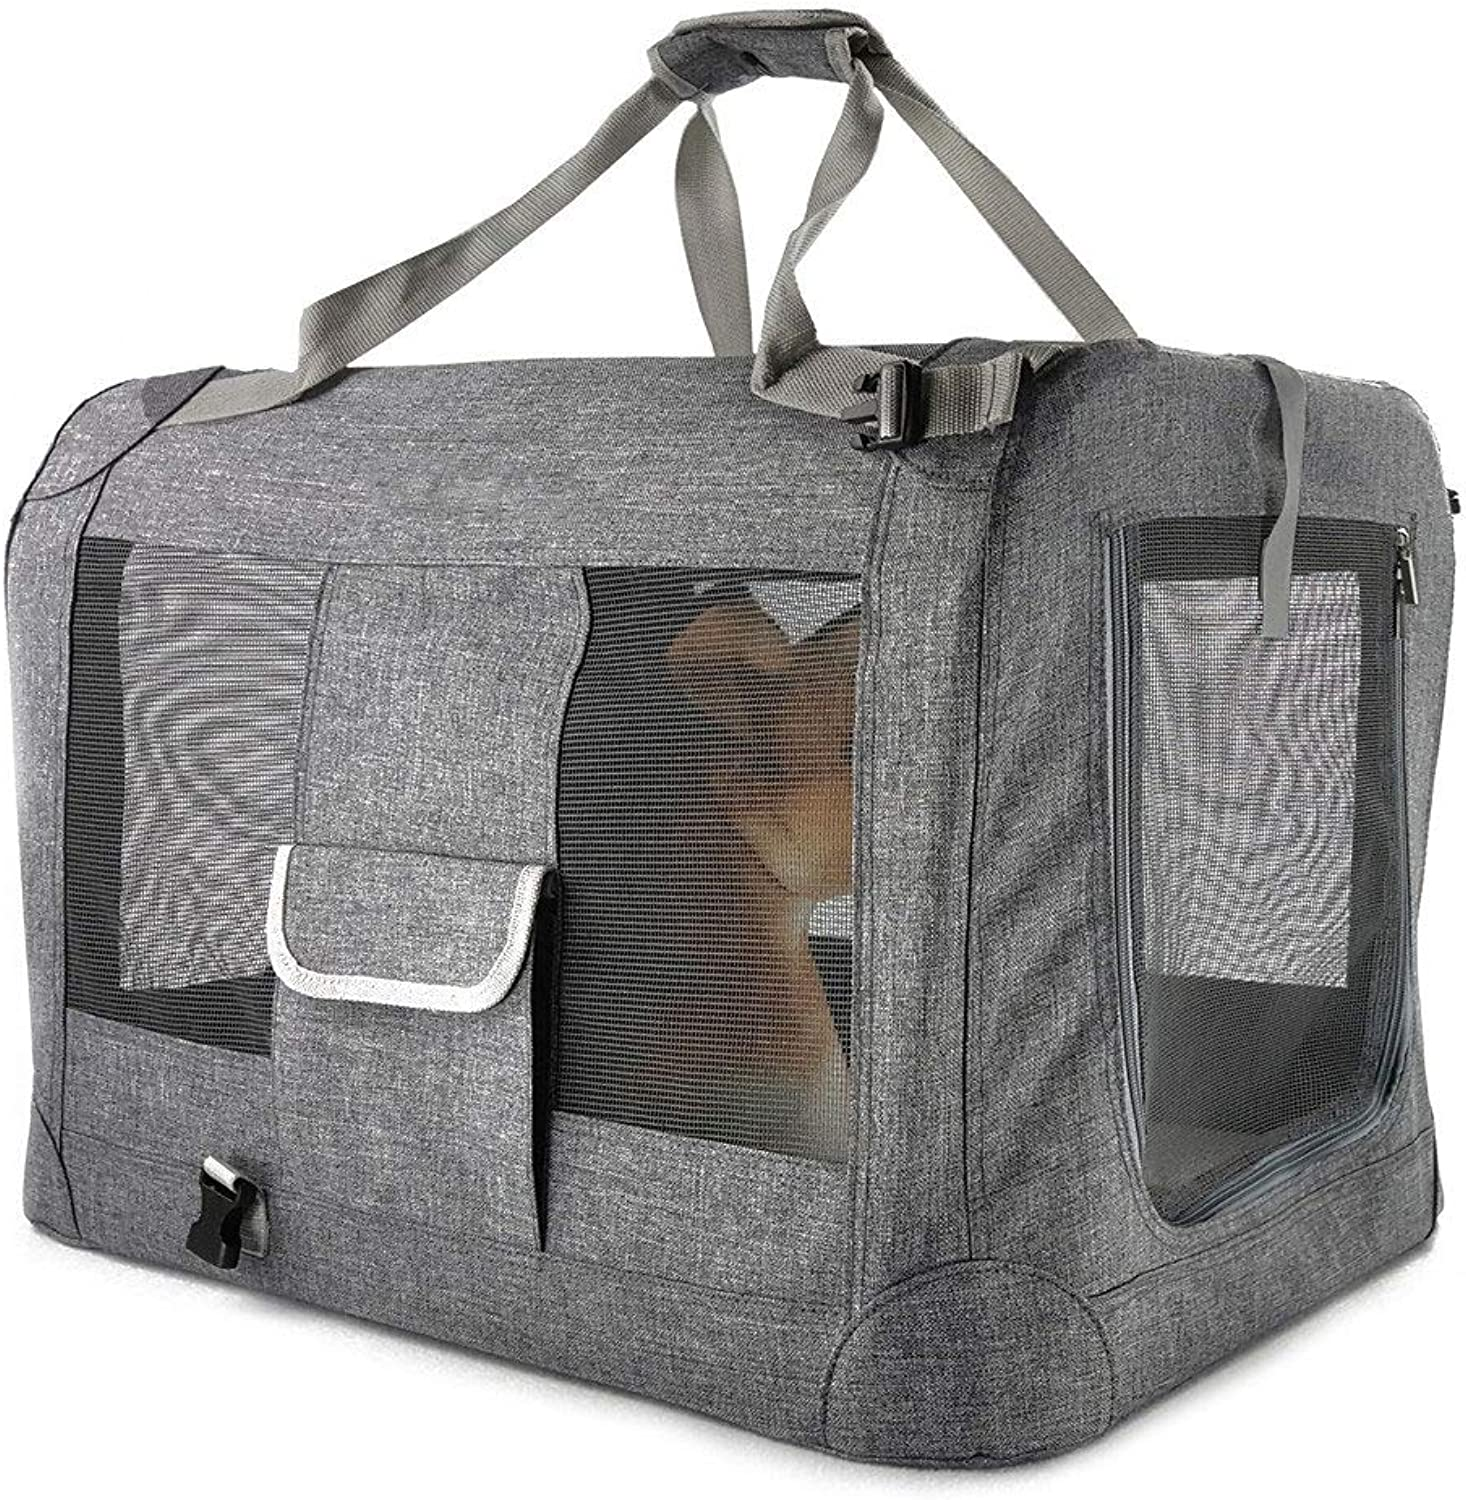 Obzk Car Pet Cage Backpack Portable Comfortable Breathable Tote Suitable For Small Cats And Dogs Pet Supplies,Light grey,M